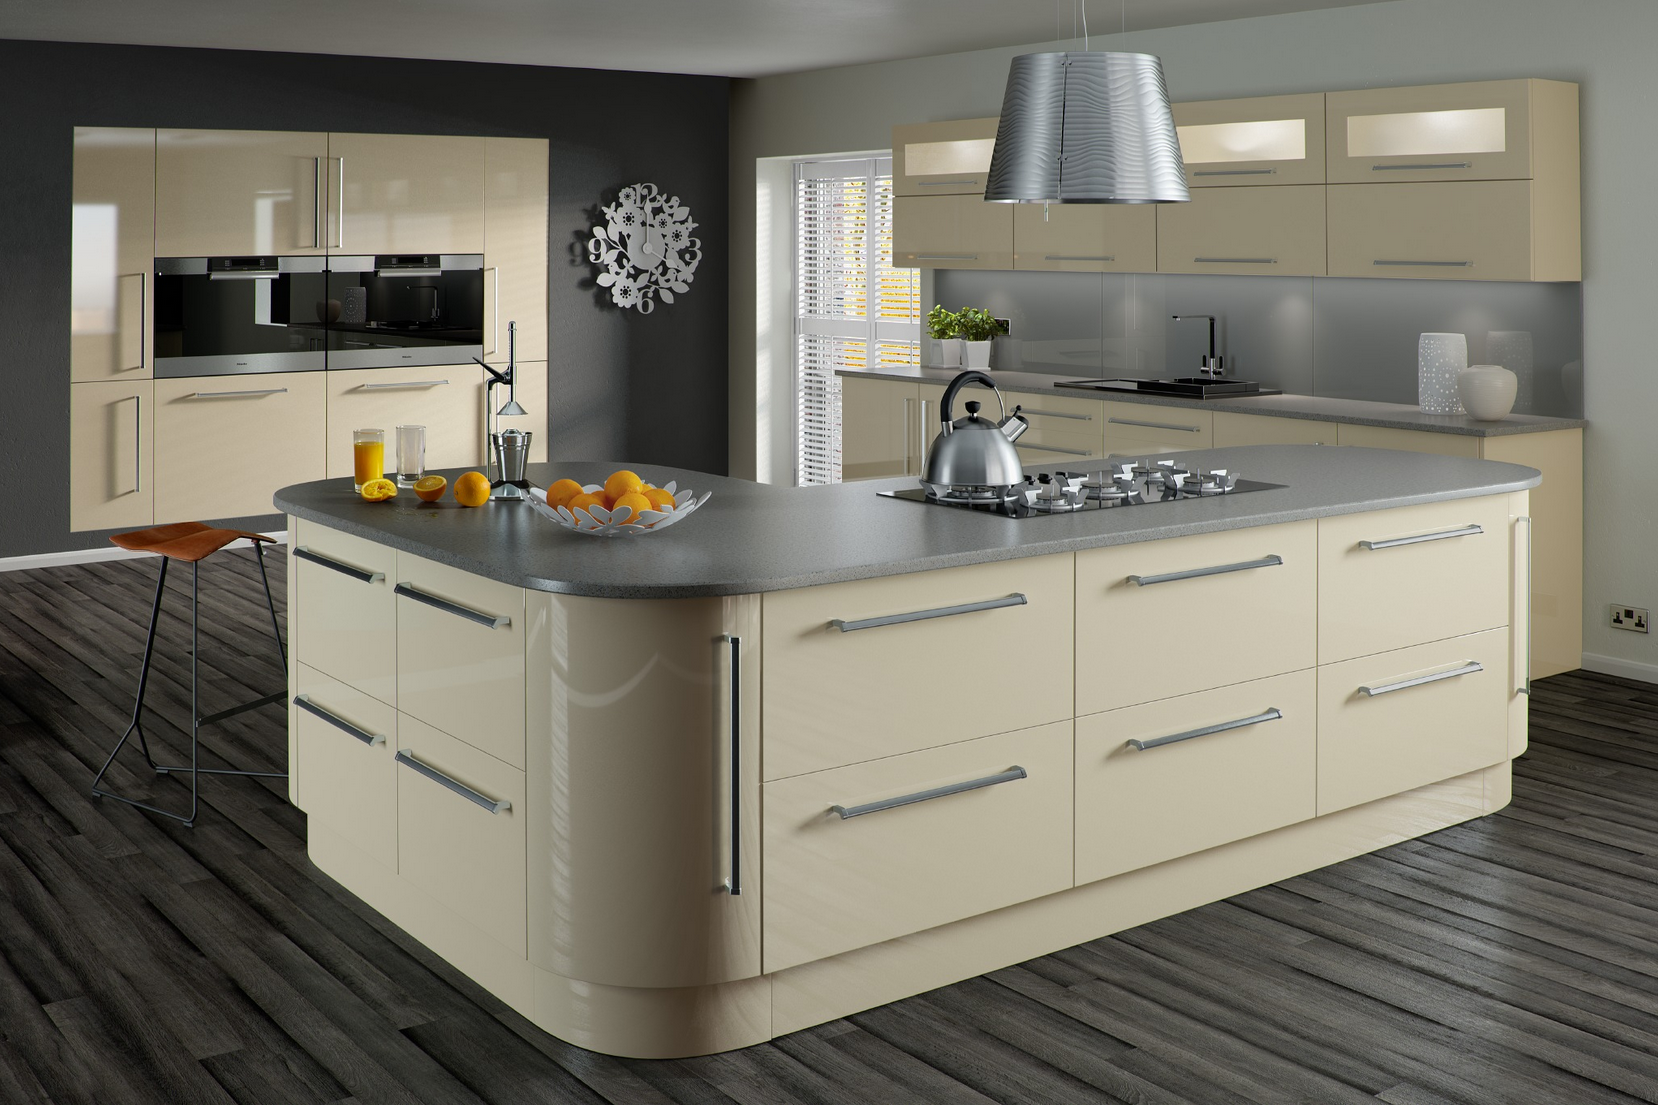 Best Cherry Cabi s With Granite Countertops as well King Platform Bed With Storage Drawers additionally Beige High Gloss Kitchen Cabi s likewise Beautiful Small Kitchen likewise Formica Laminate Elemental Concrete Countertops. on black kitchen cabinets